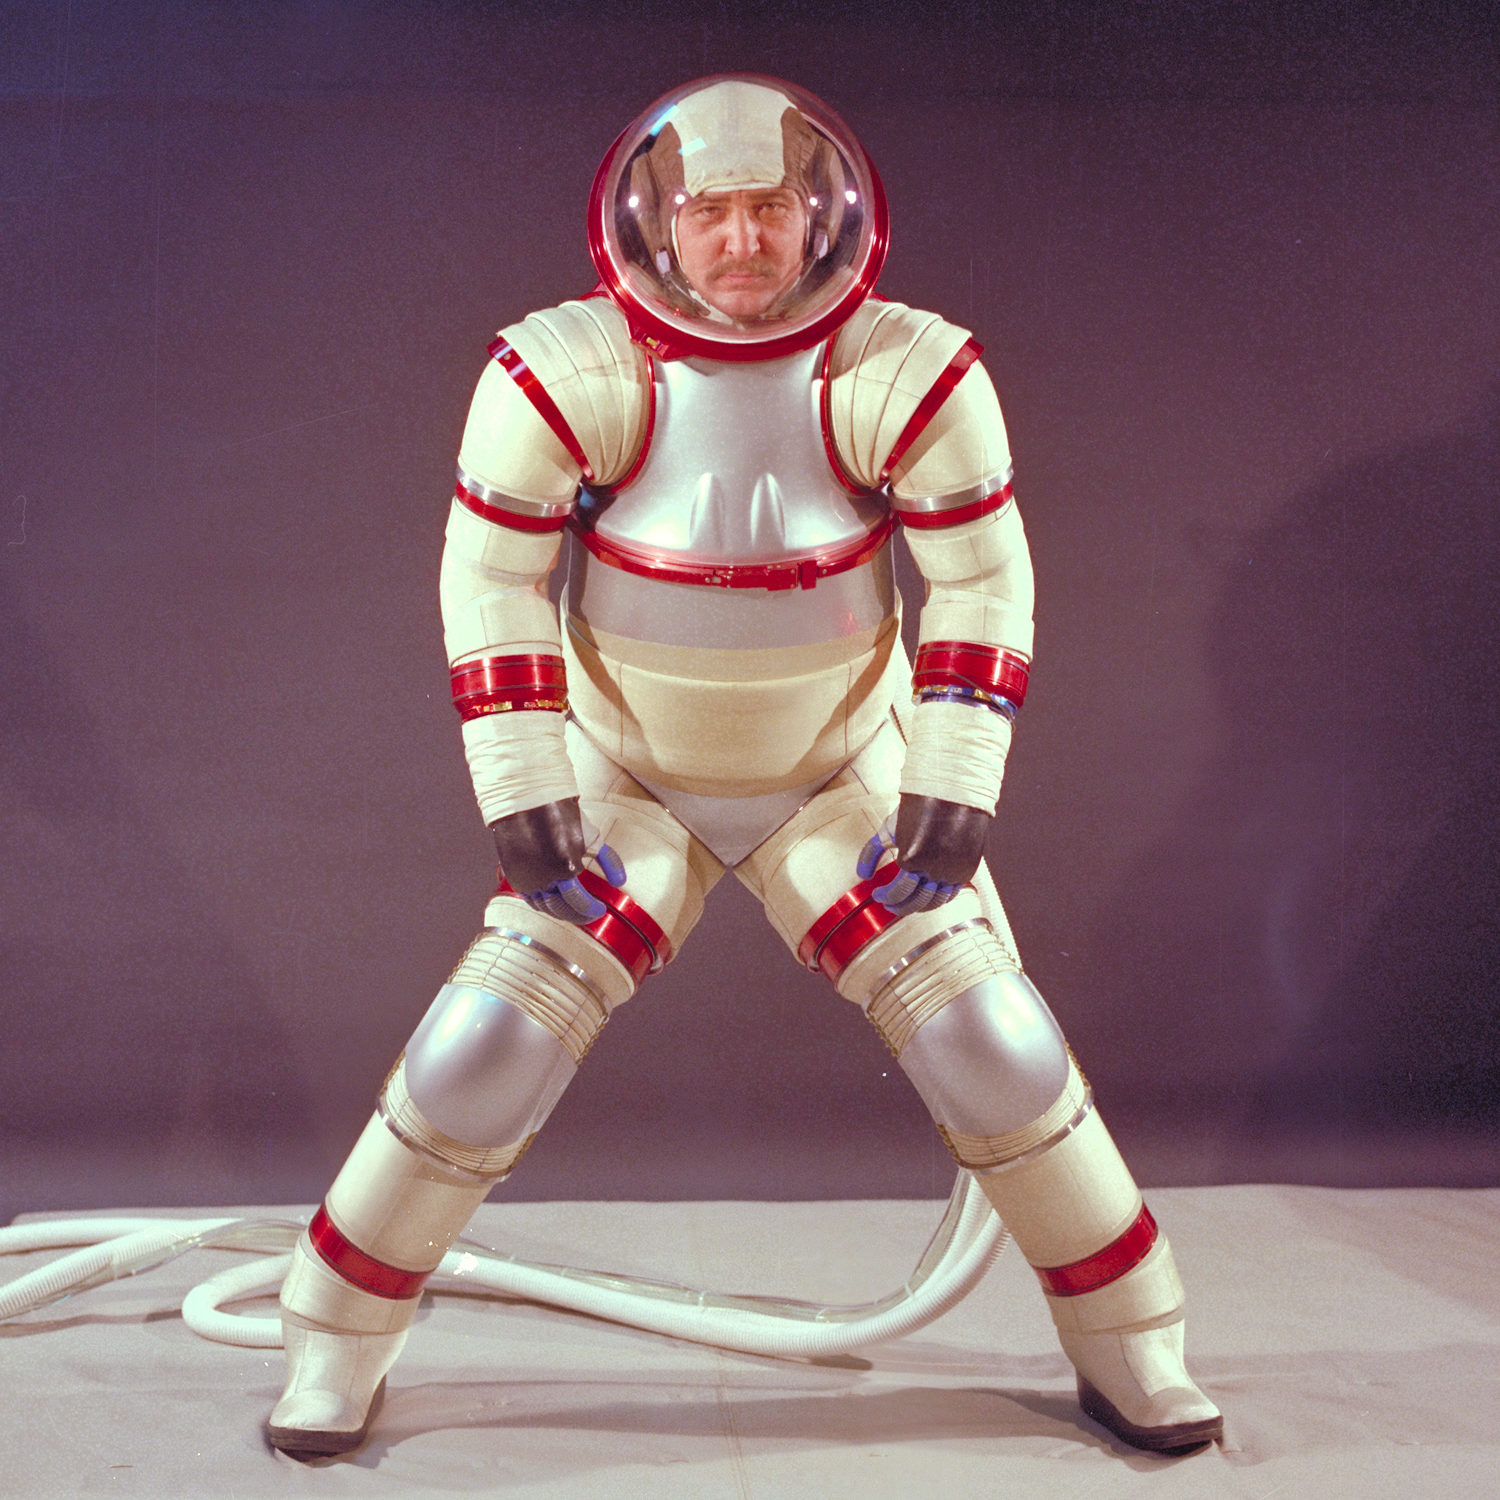 NASA's Number 1 Space Suits Model - Flashbak